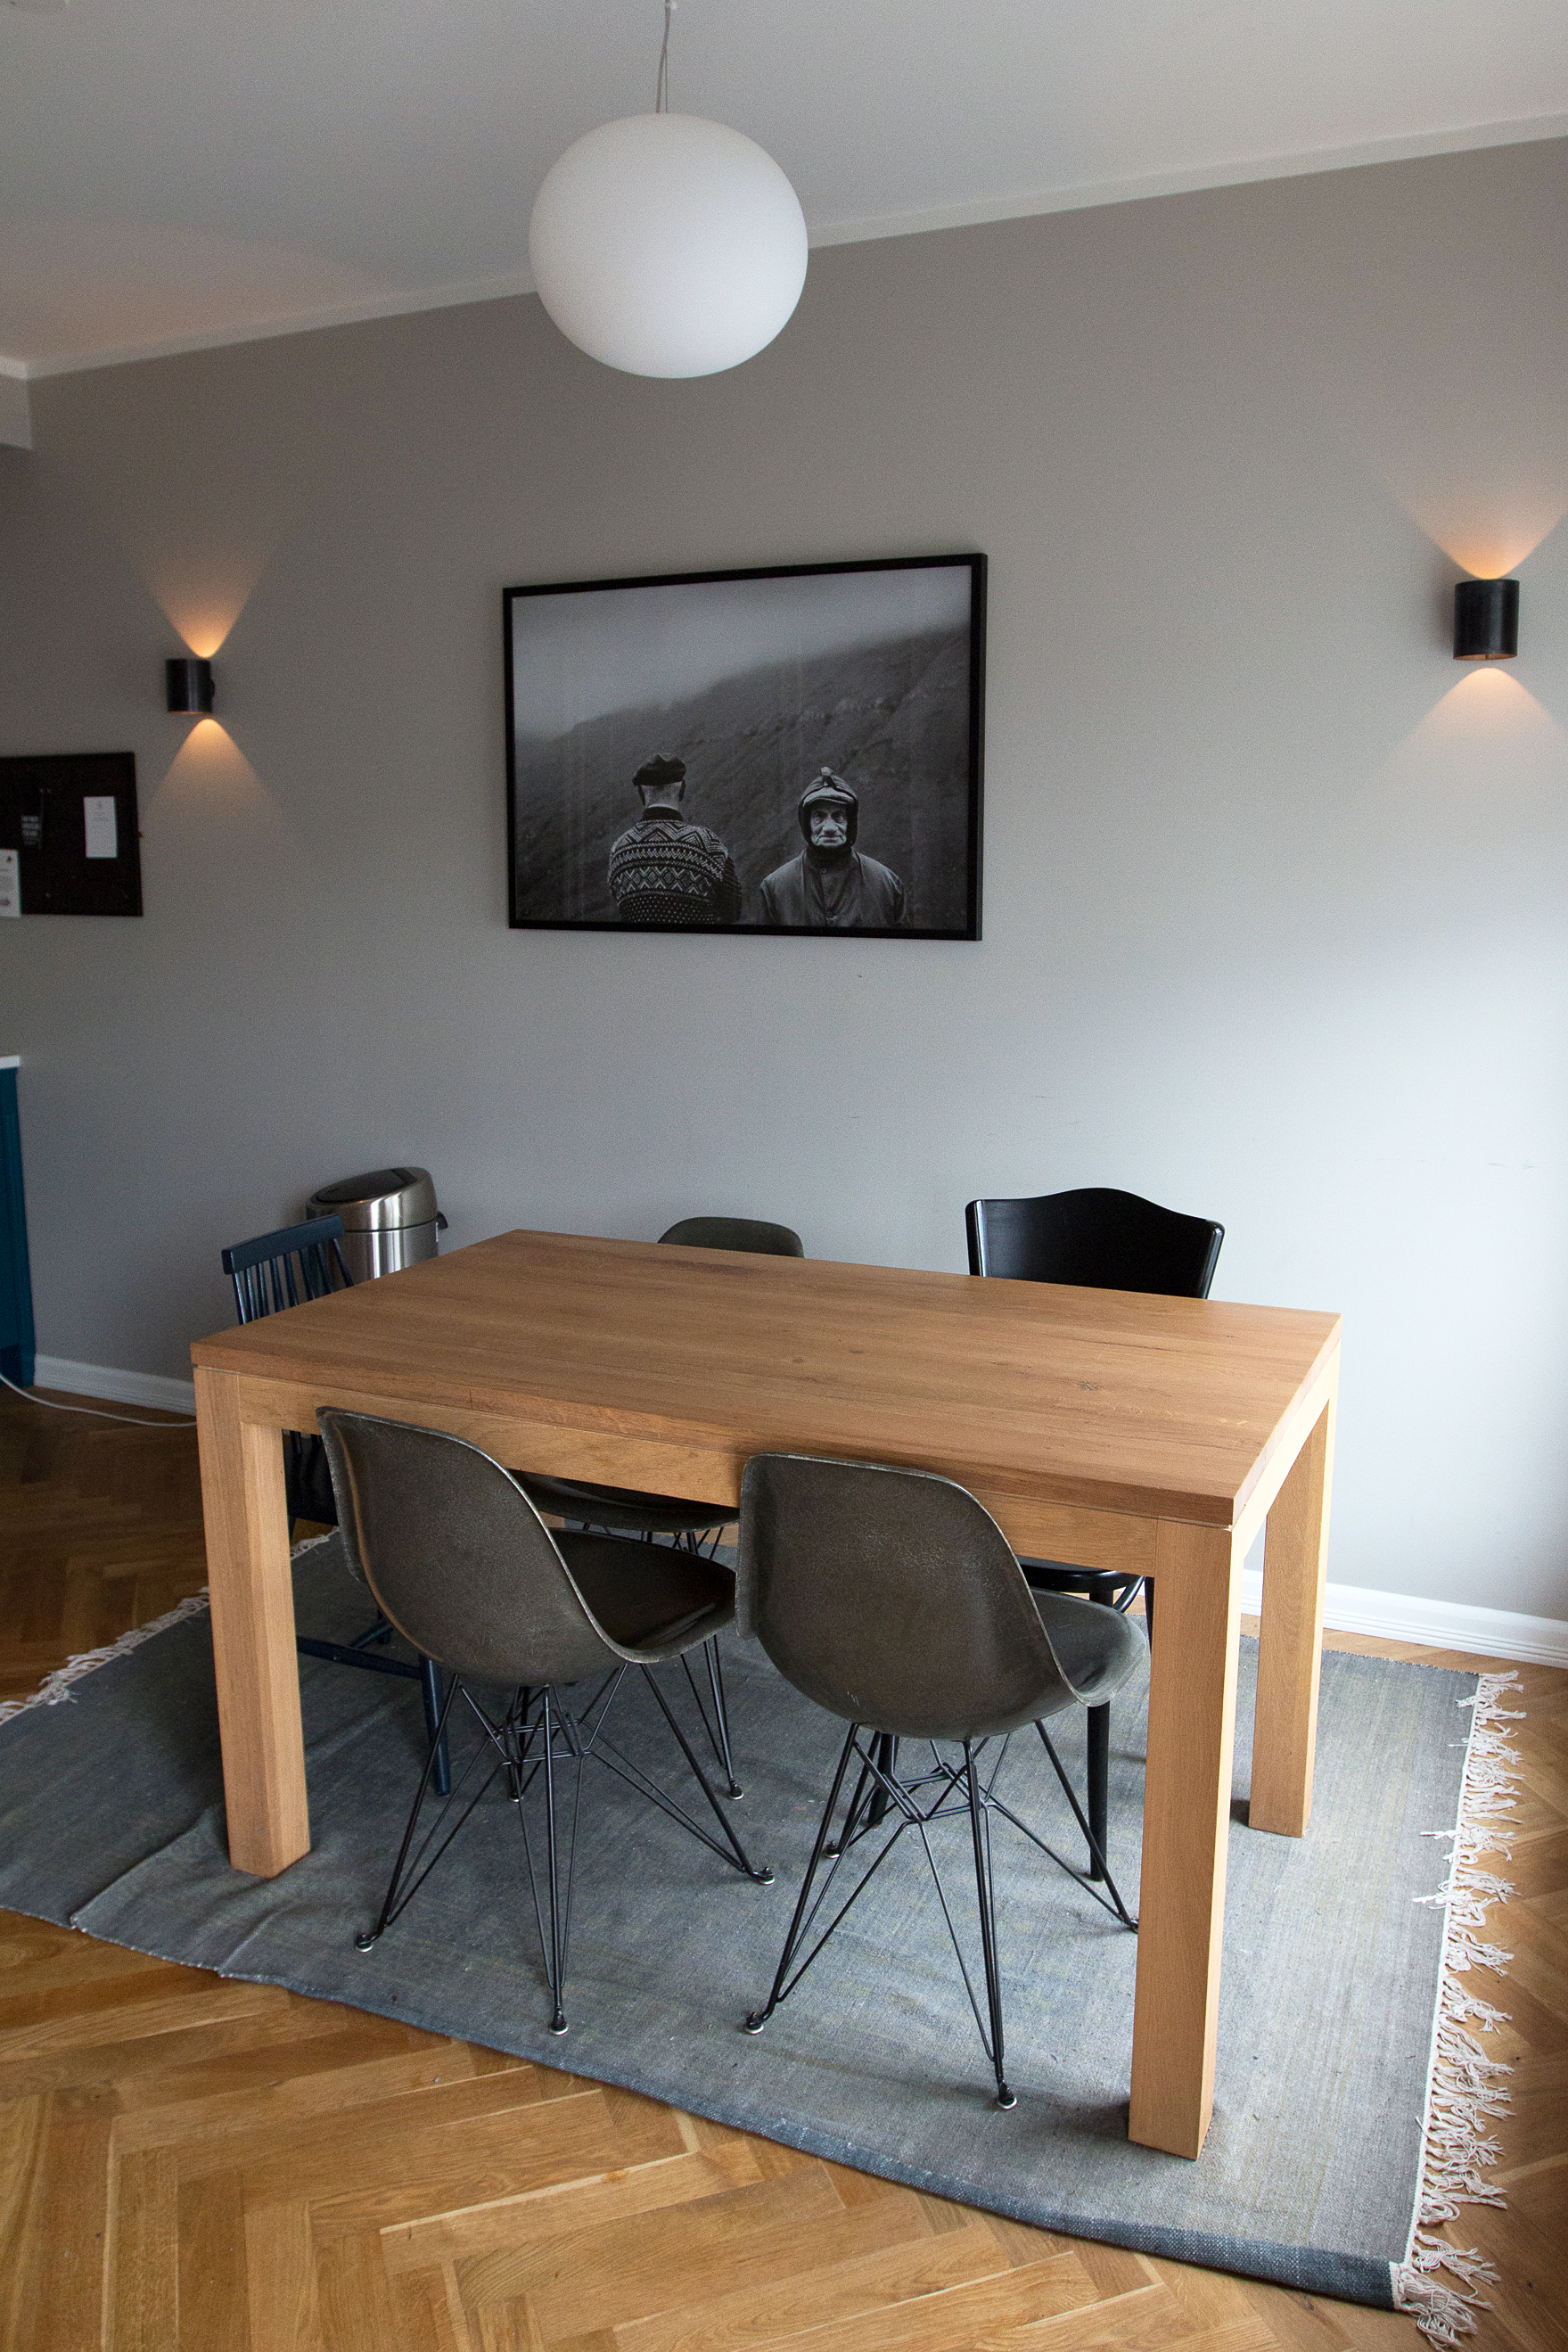 """Kitchen of our """"Bigger"""" room at Hotel Kvosin. My favorite Icelandic photo by RAX Ragnar Axelsson hanging on the wall"""